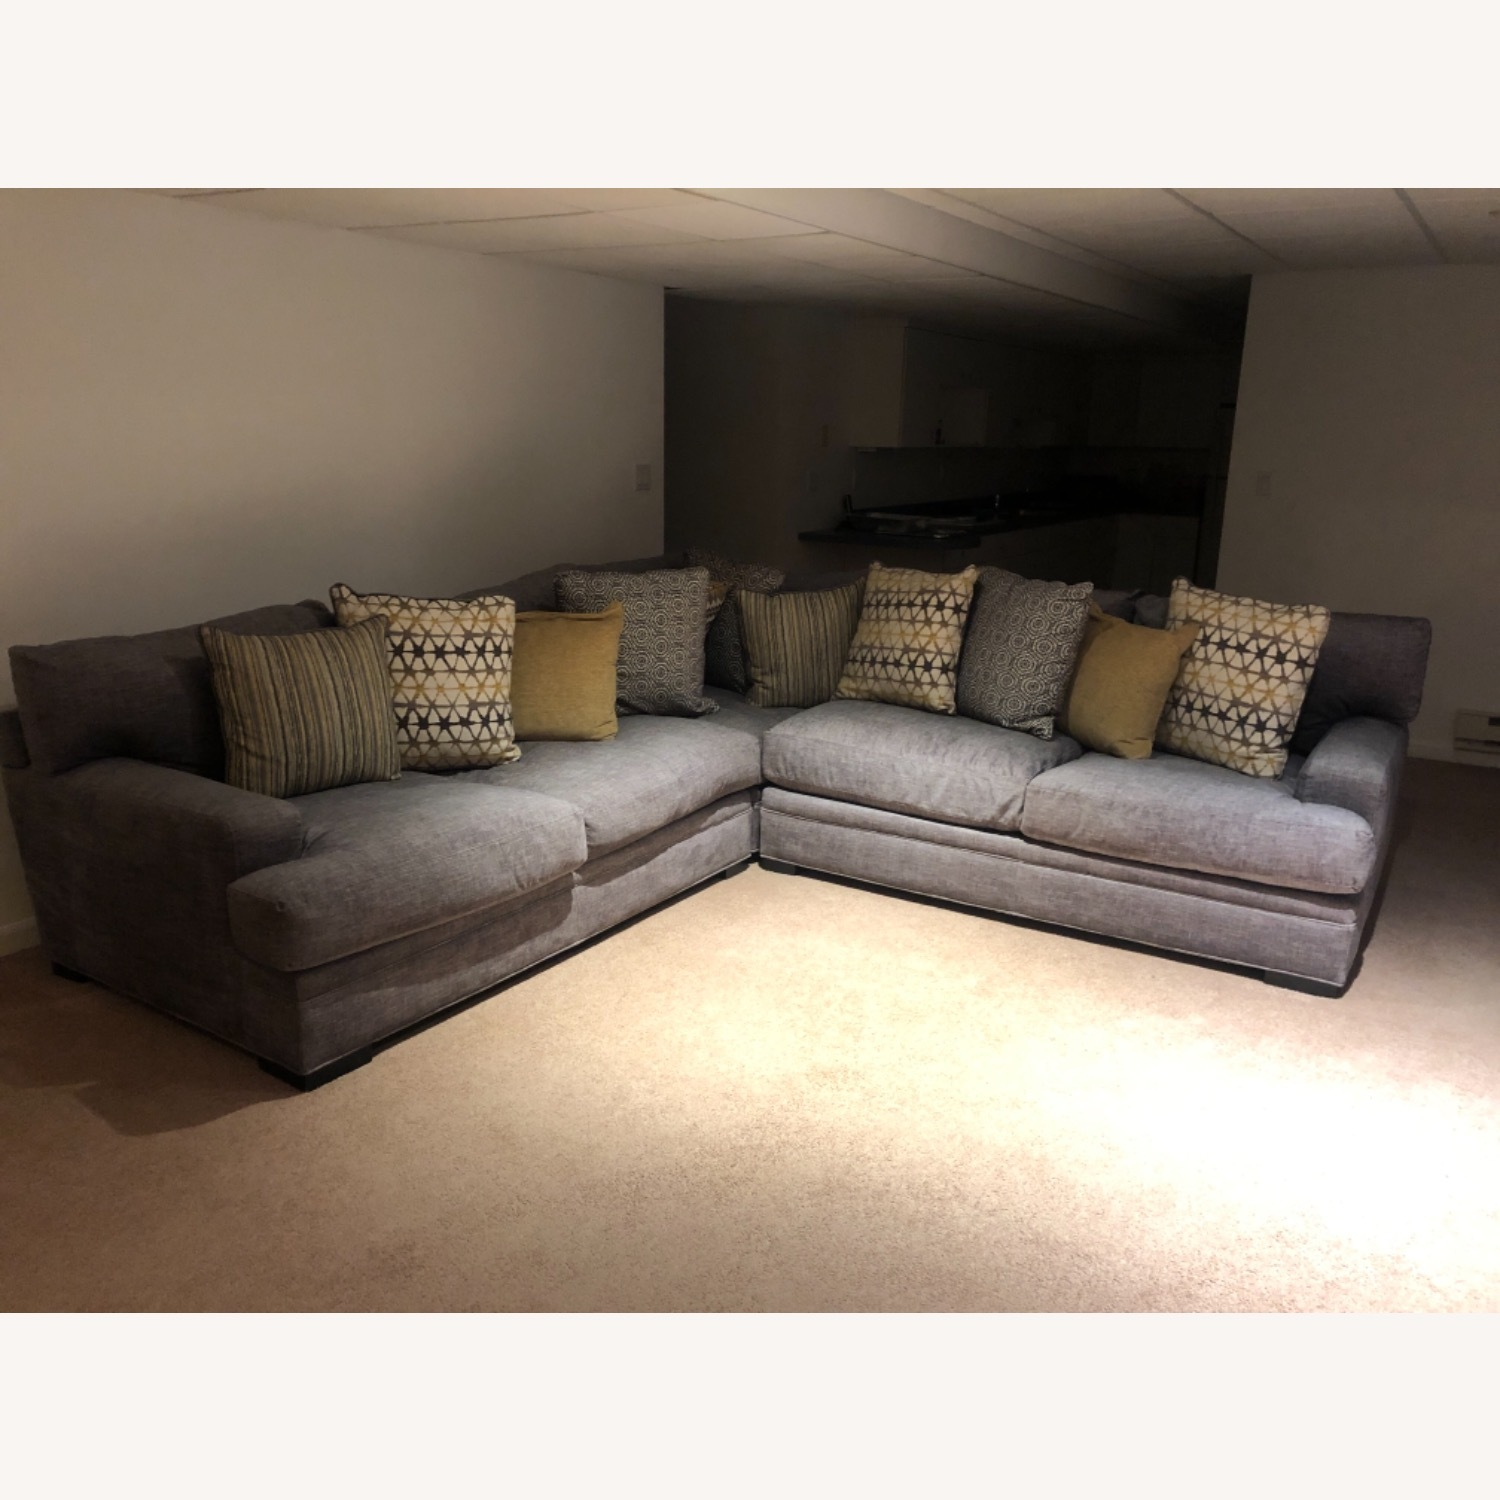 Rooms To Go Gray 3 Piece Sectional Cindy Crawford Home - image-2